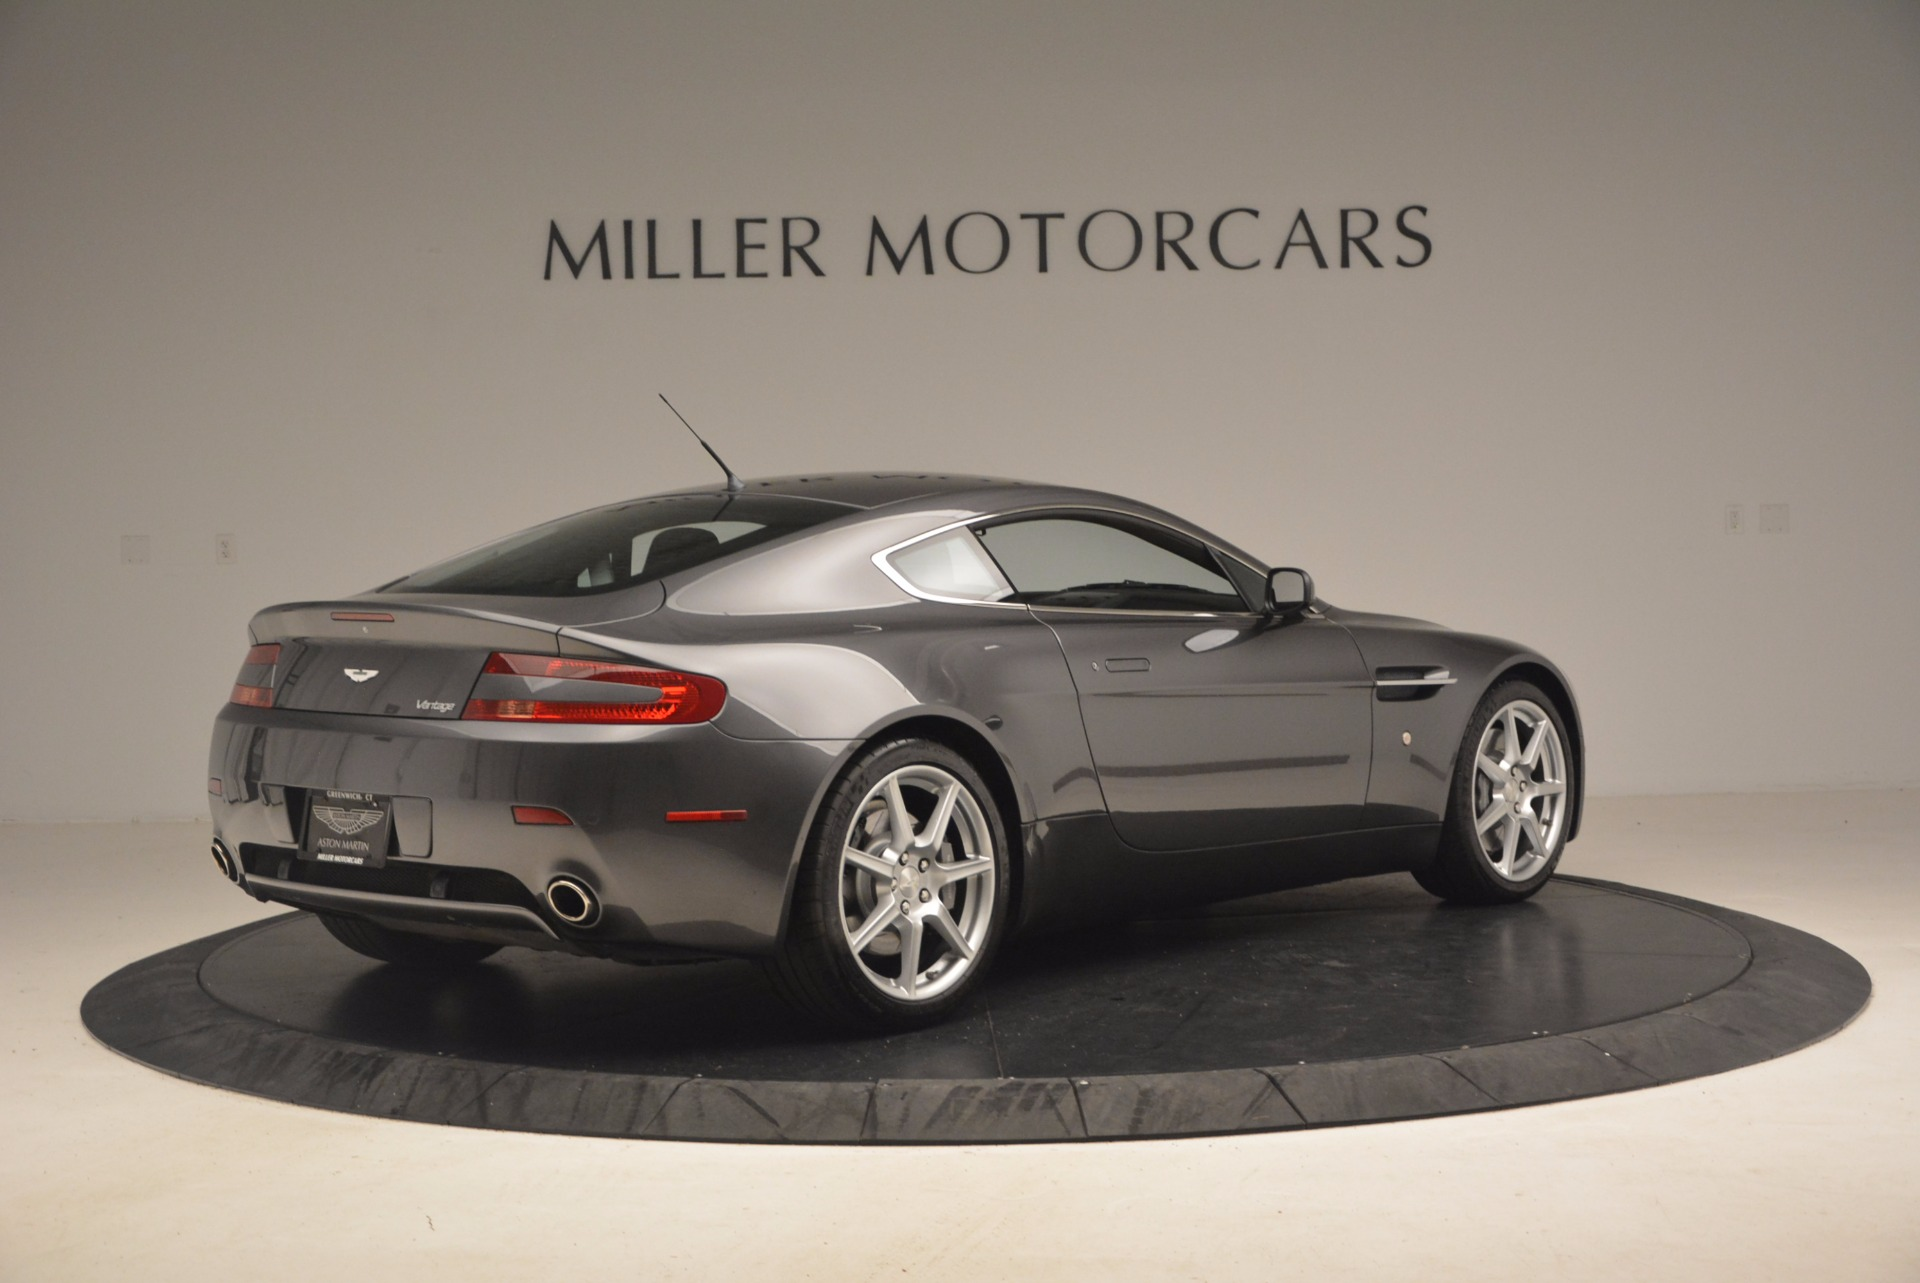 Used 2006 Aston Martin V8 Vantage Coupe  For Sale In Westport, CT 1180_p8